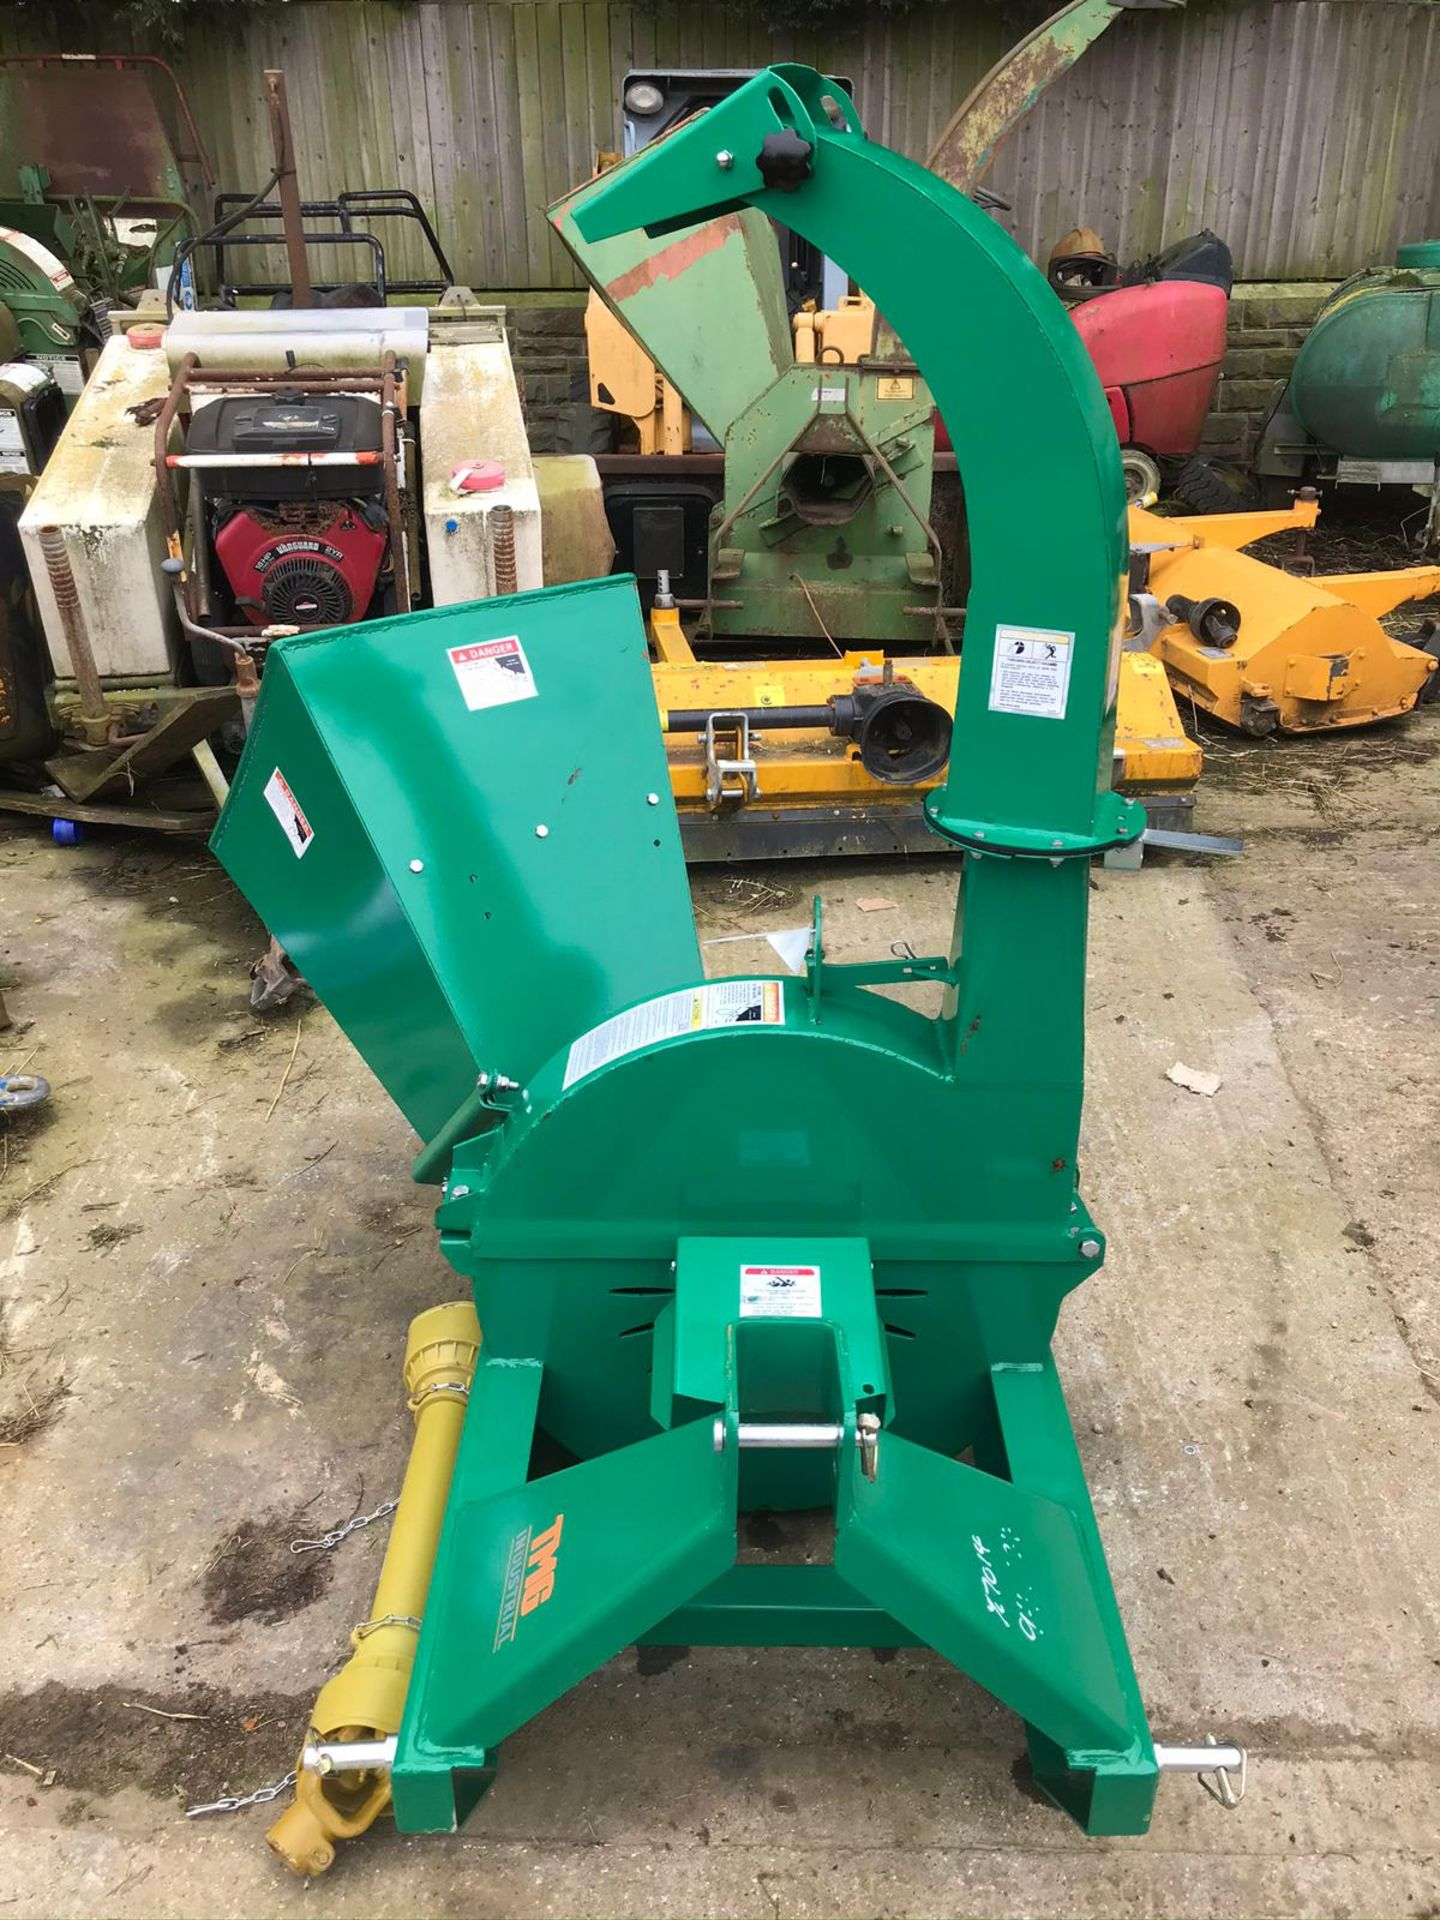 BRAND NEW AND UNUSED WOOD CHIPPER, SUITABLE FOR COMPACT TRACTOR *PLUS VAT* - Image 6 of 7